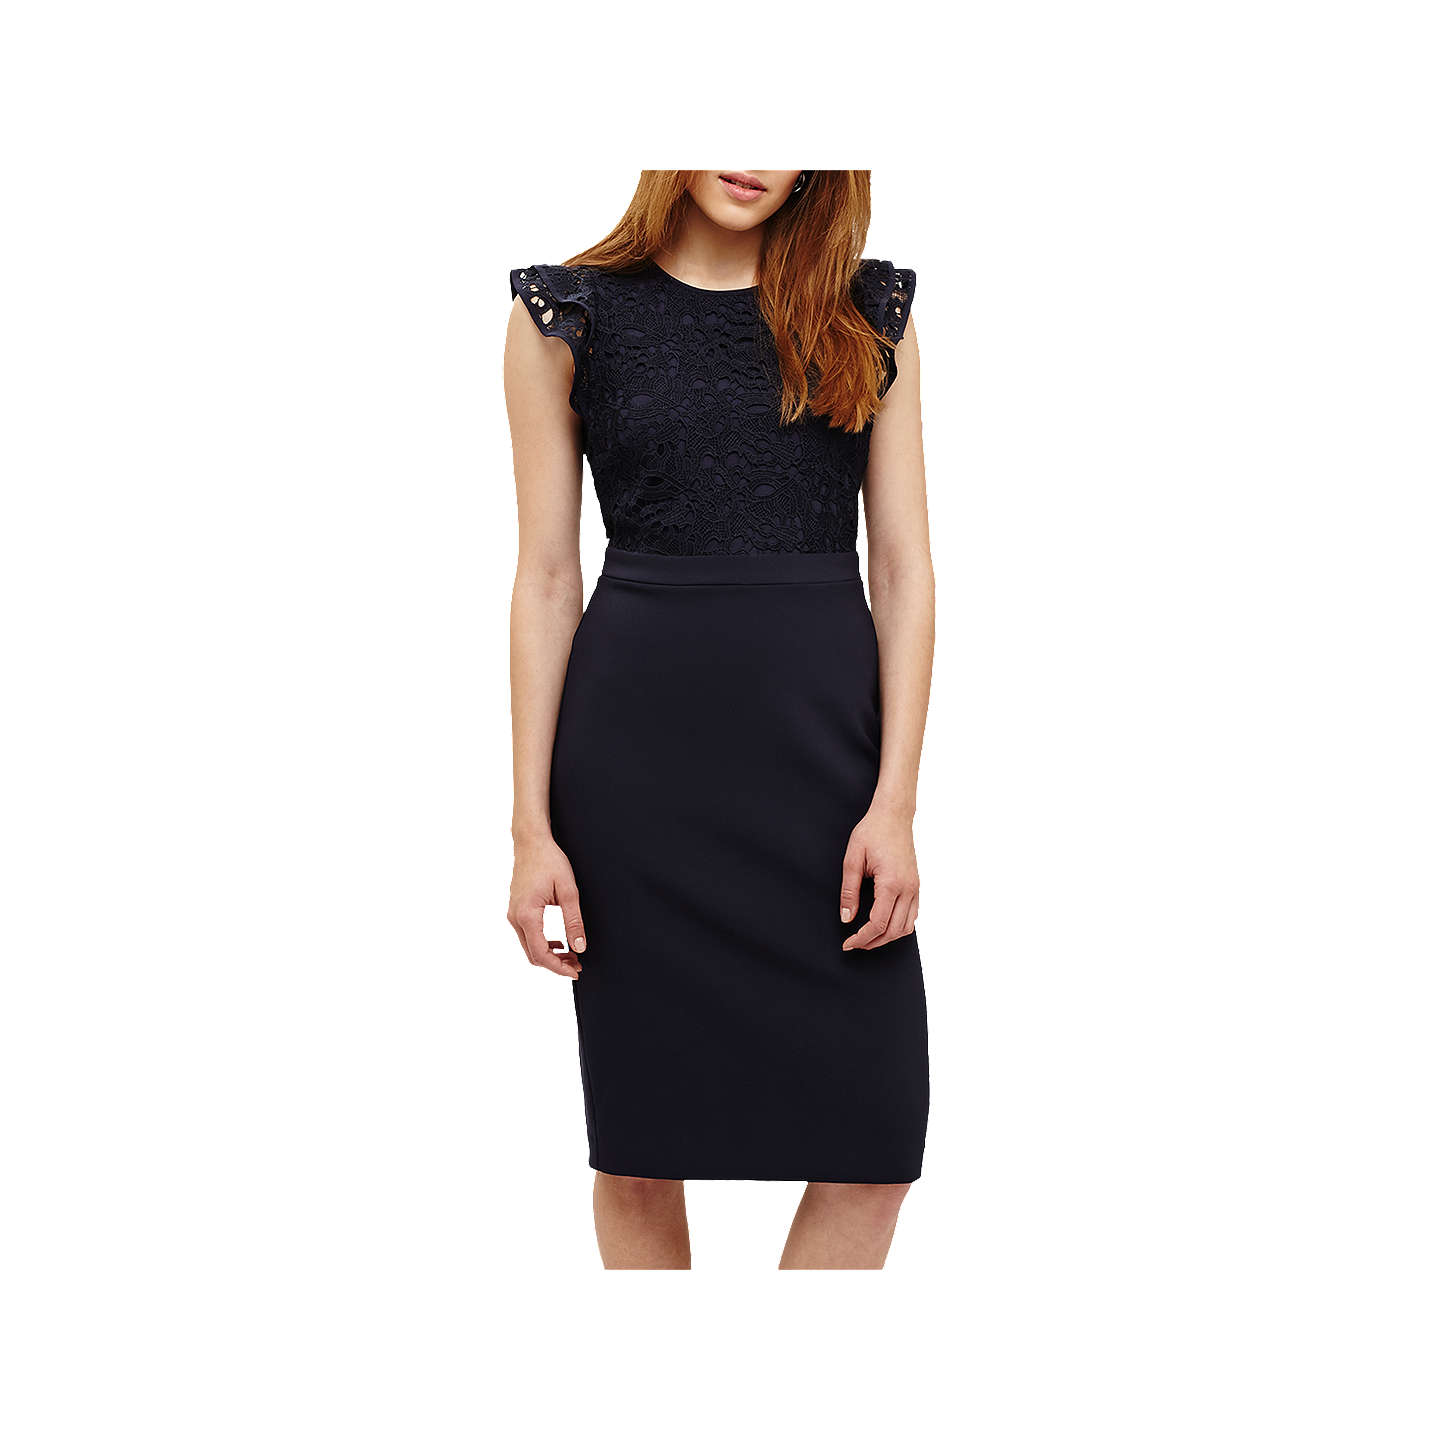 BuyPhase Eight Peggy Lace Dress, Navy, 20 Online at johnlewis.com